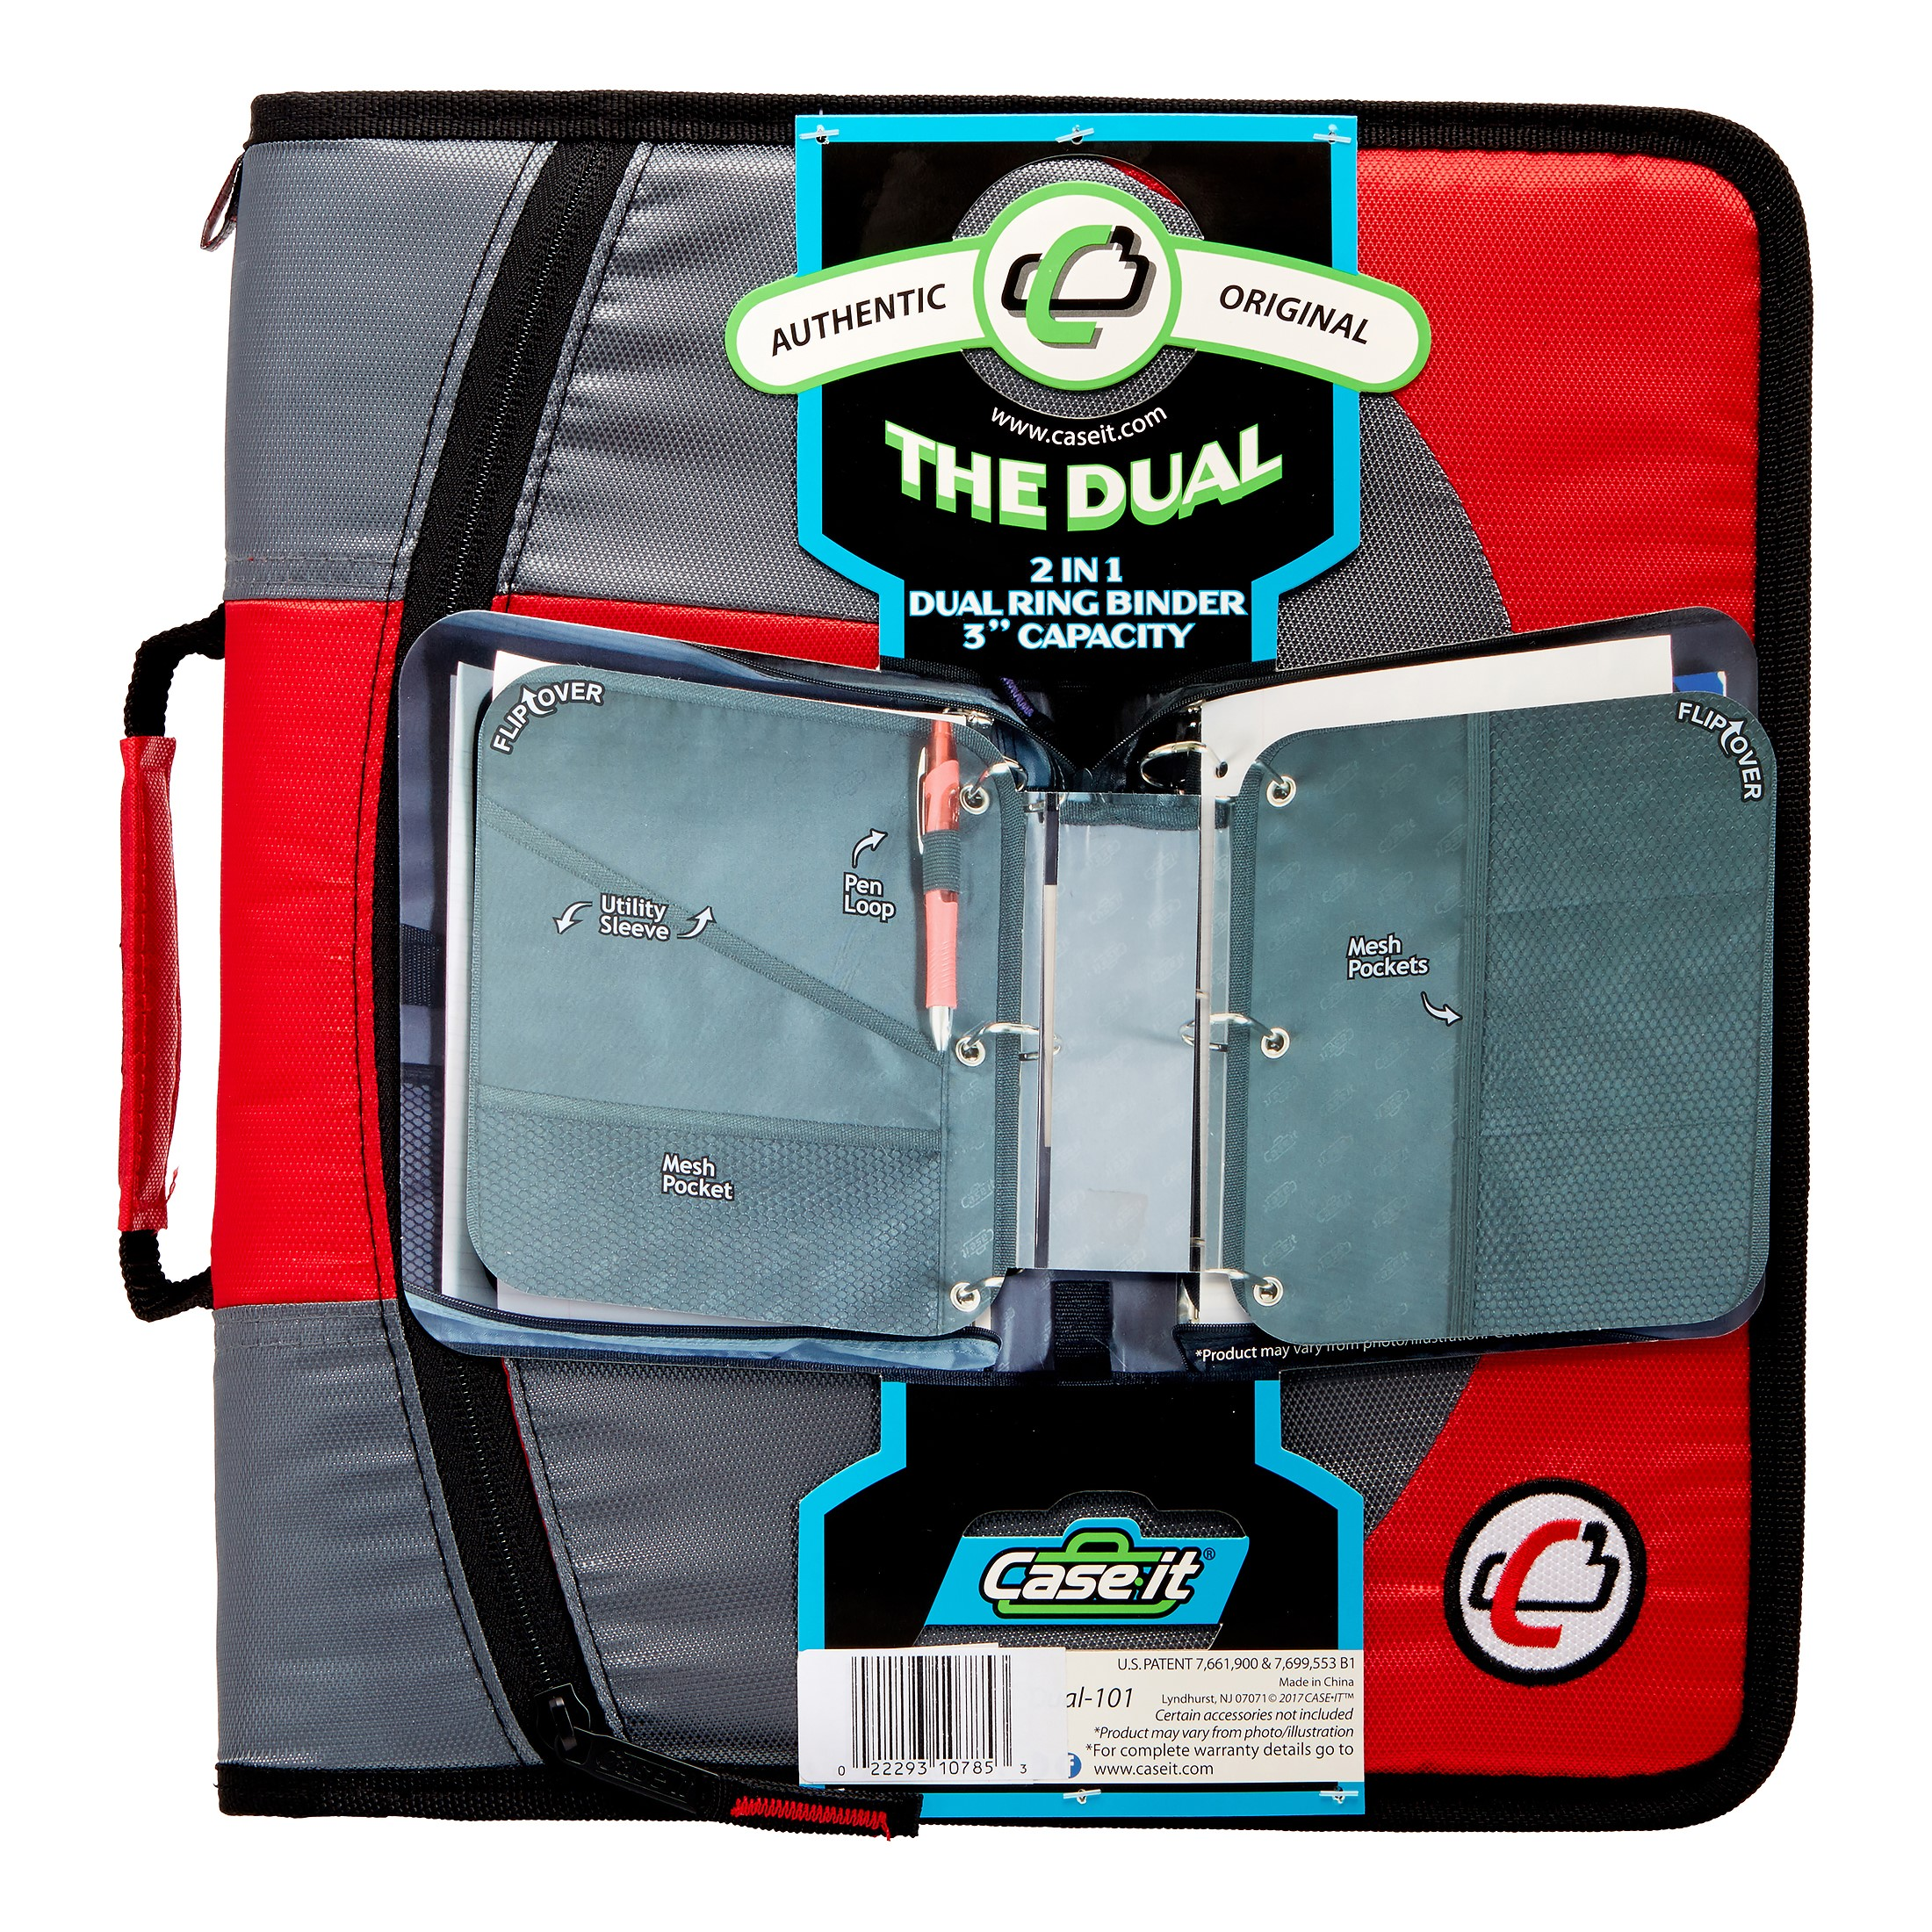 Case-It Dual 2-in-1 Zipper D-Ring Binder, 2 Sets of 1.5-Inch Rings, Red, DUAL-101-RD